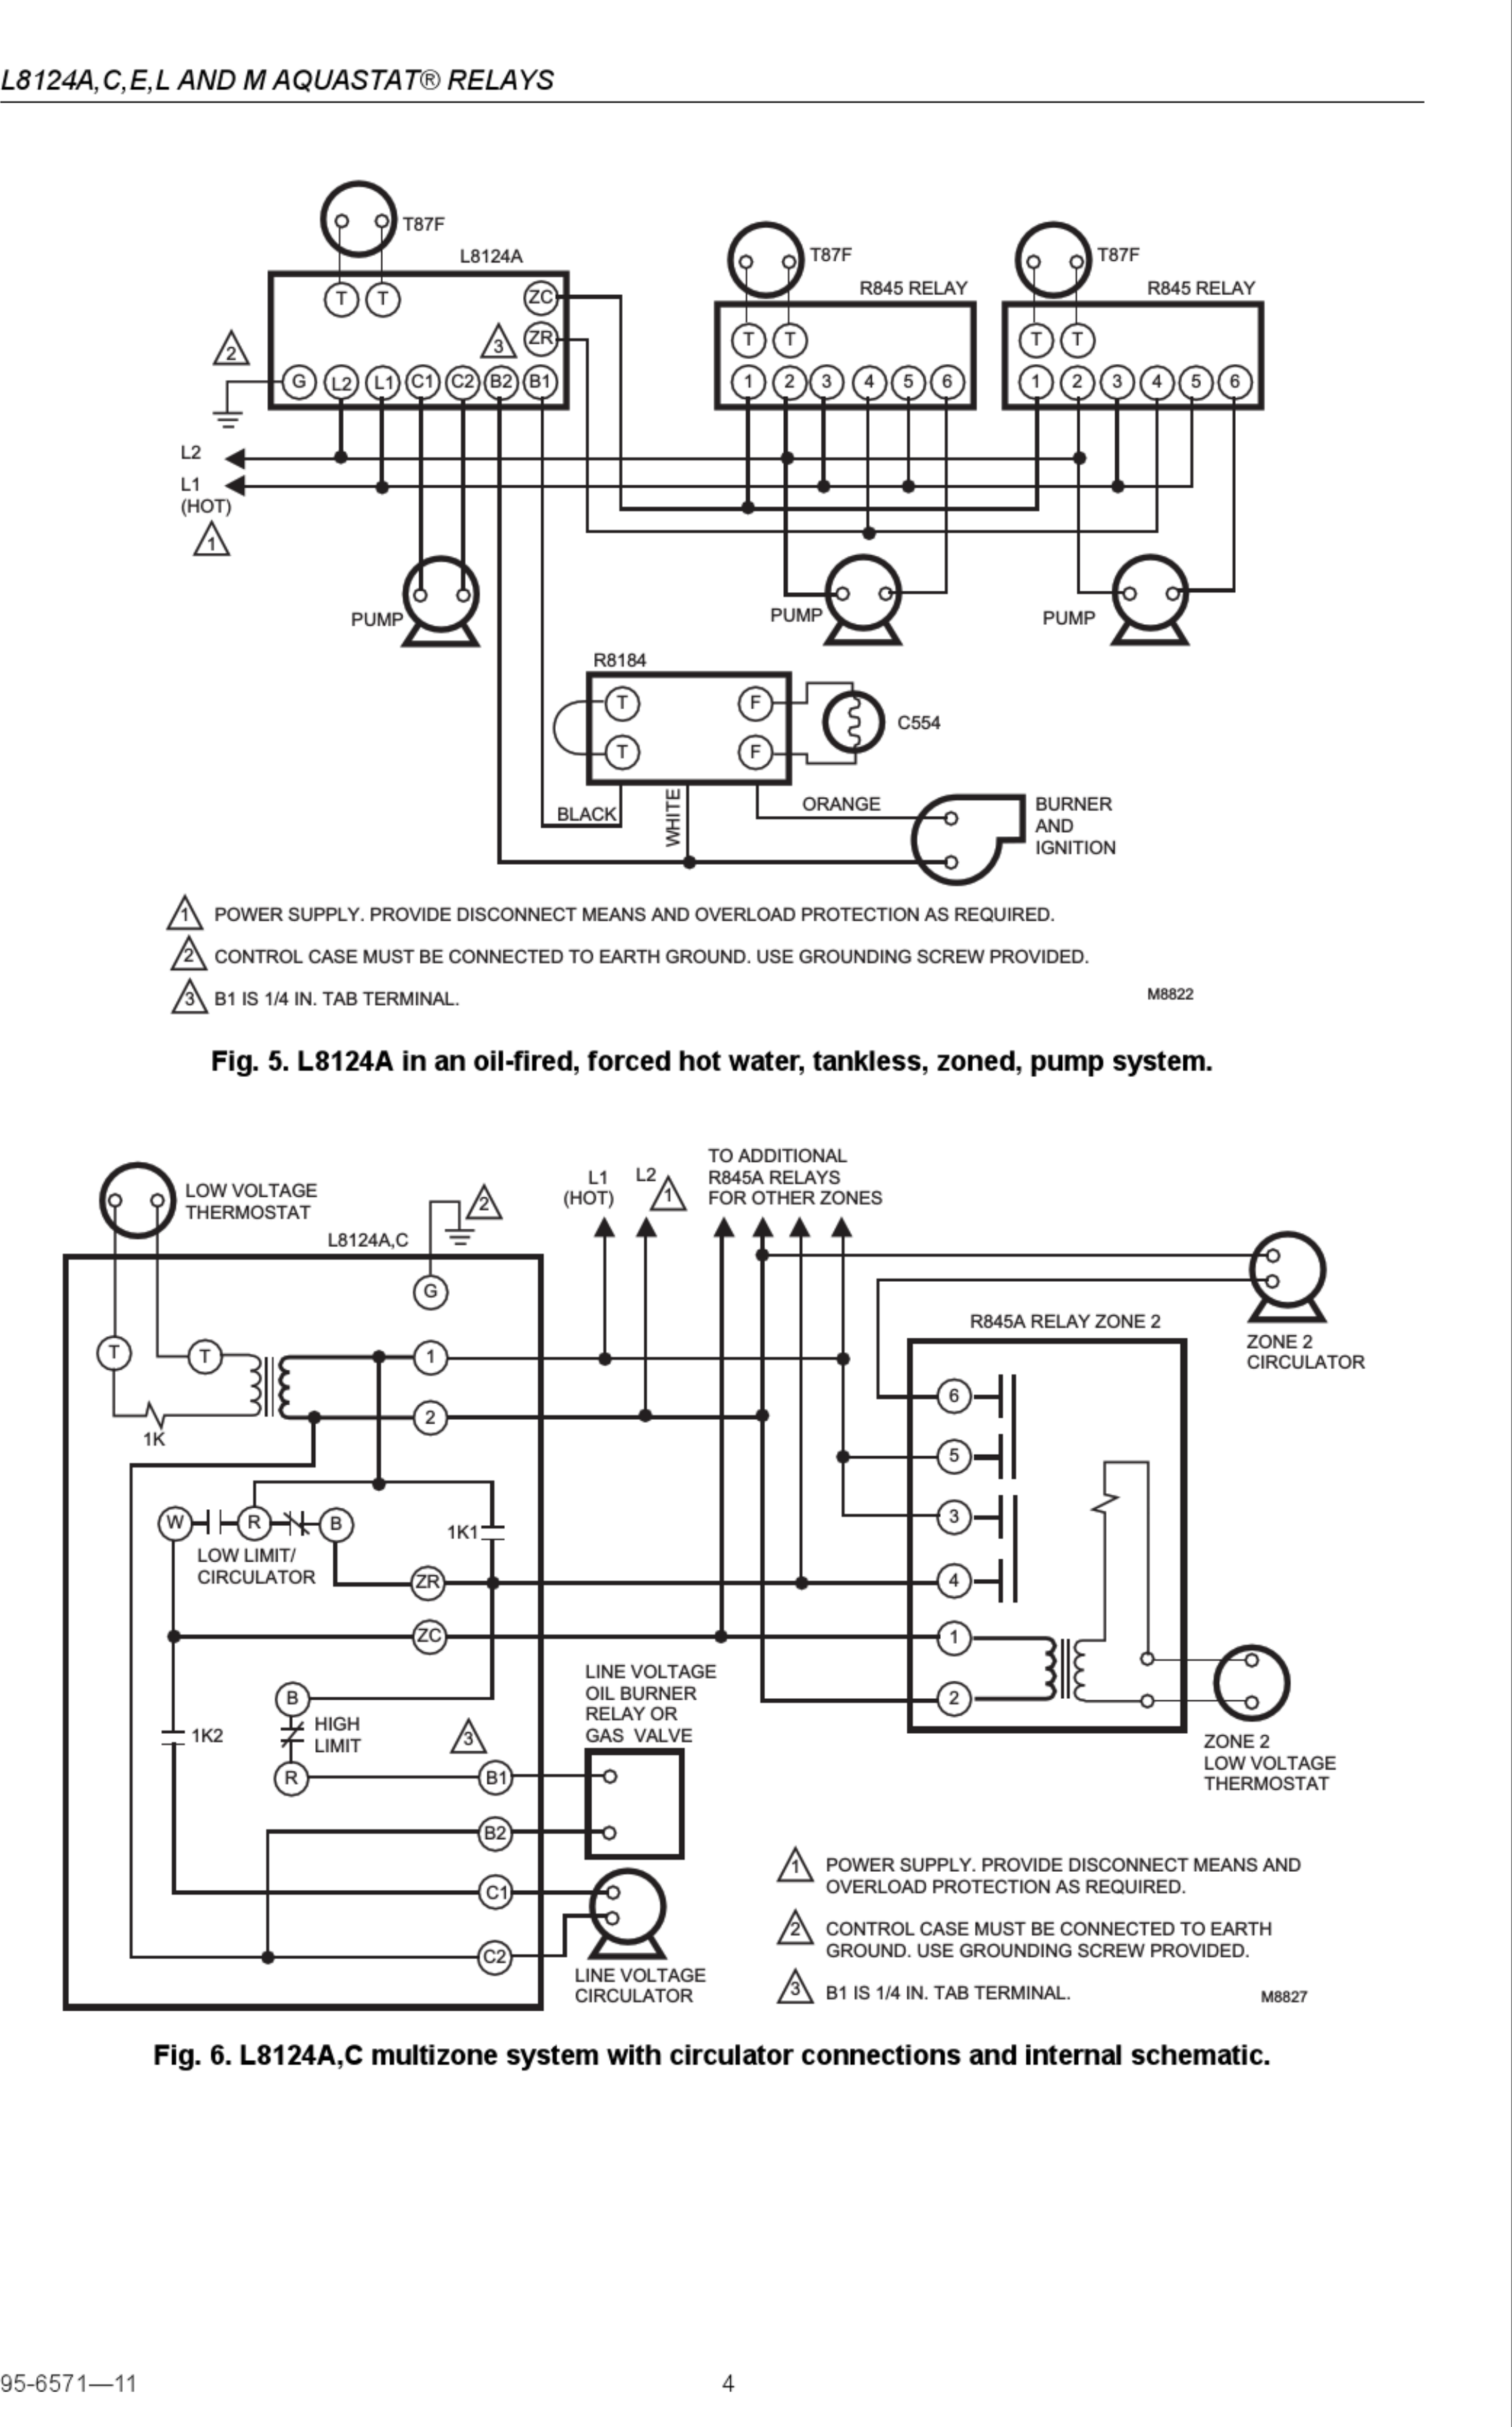 Honeywell Wiring Diagrams Auto Electrical Diagram L4064b2210 Aquastat L8124a Schemes Pdf S Plan